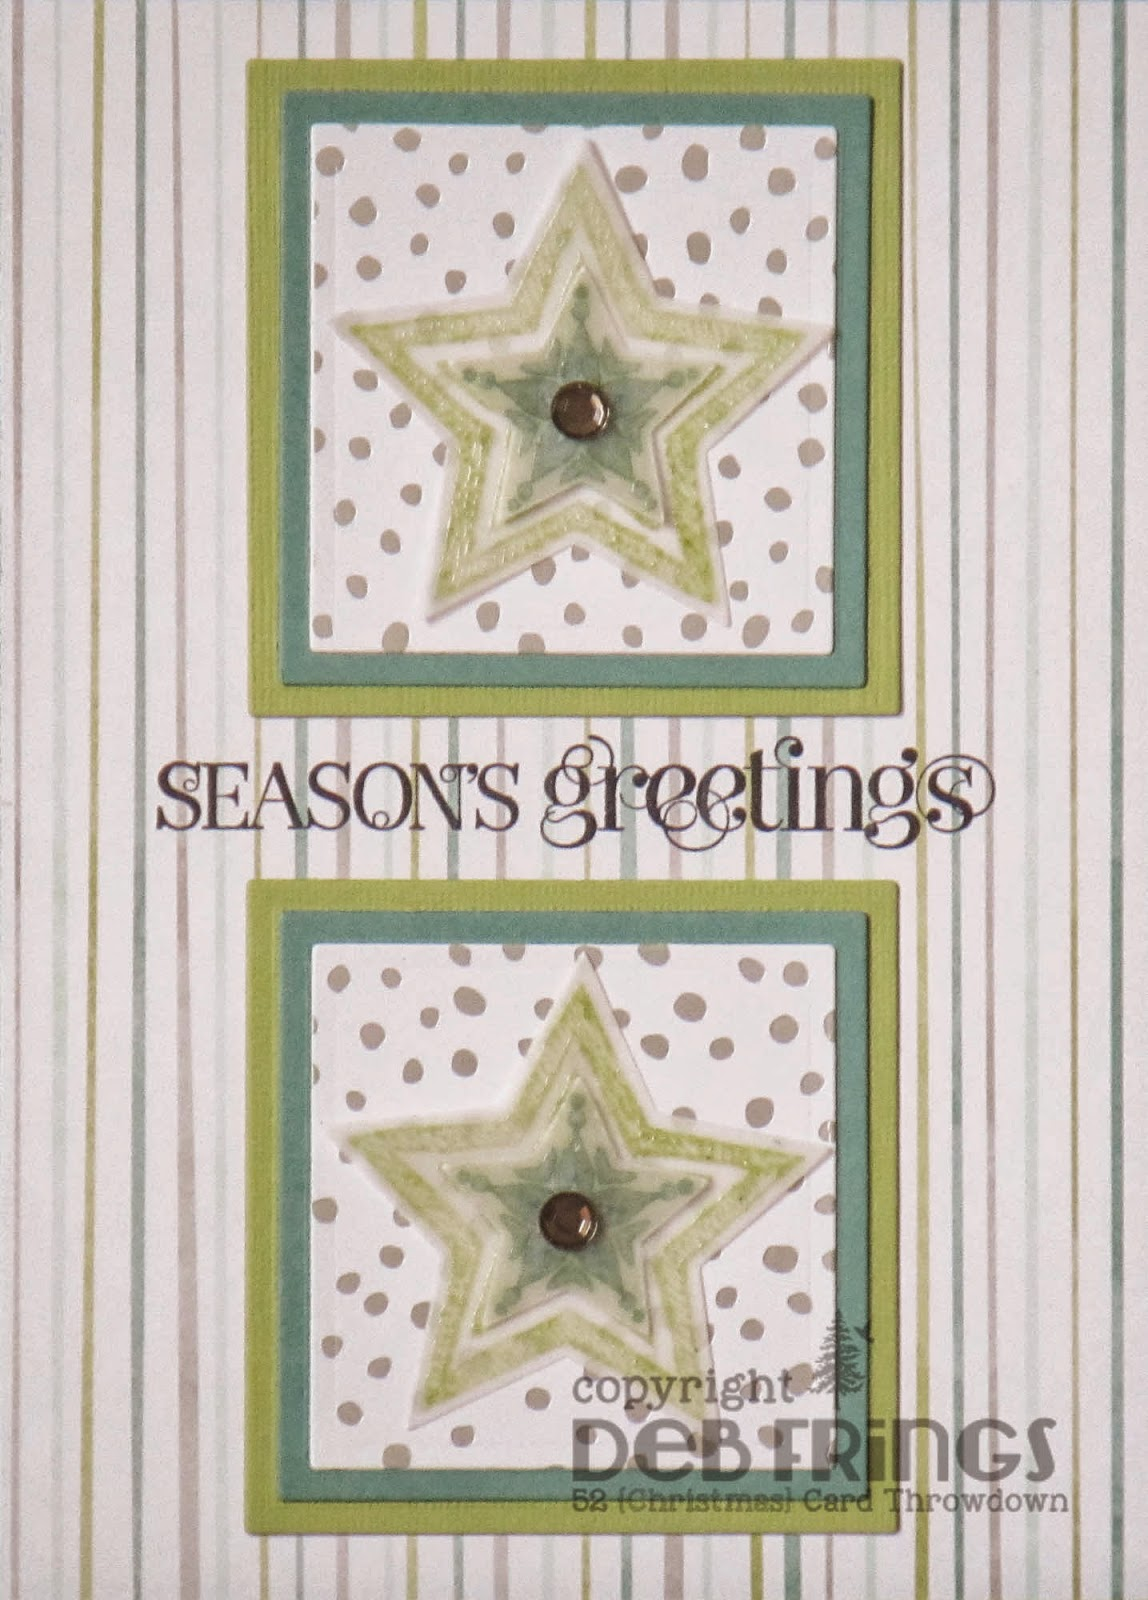 Season's Greetings - photo by Deborah Frings - Deborah's Gems